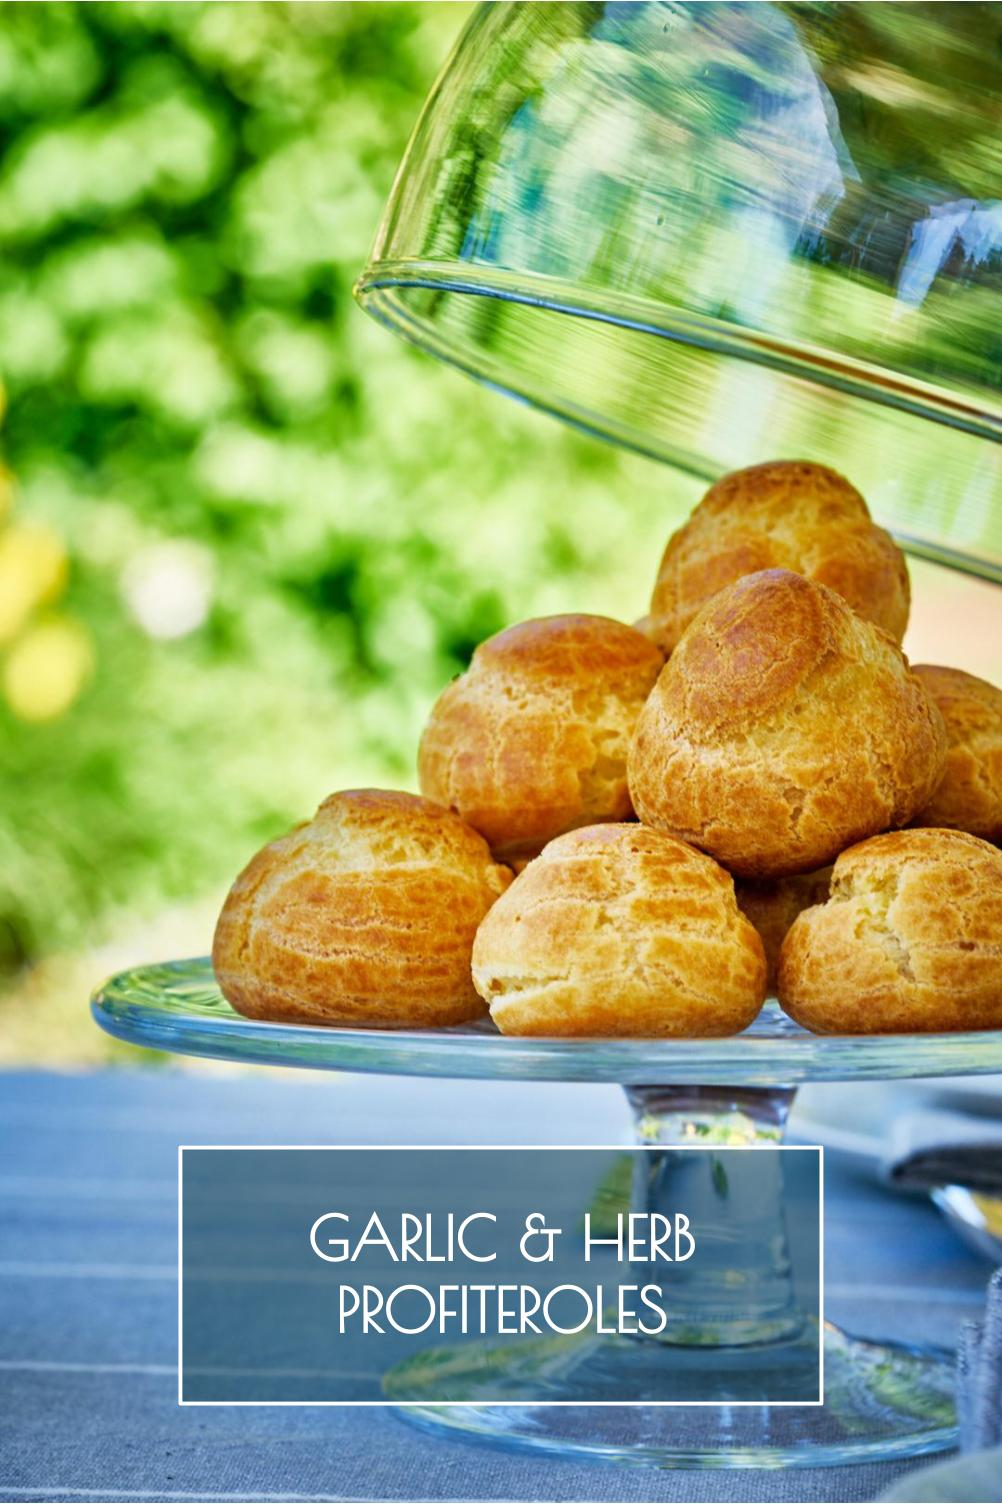 These garlic & herb savory profiteroles are just what your next party (or tea party) needs. They\'re impressive, herbaceous, and packed with rich flavor. #profiteroles #cheesefilling #garlicandherb